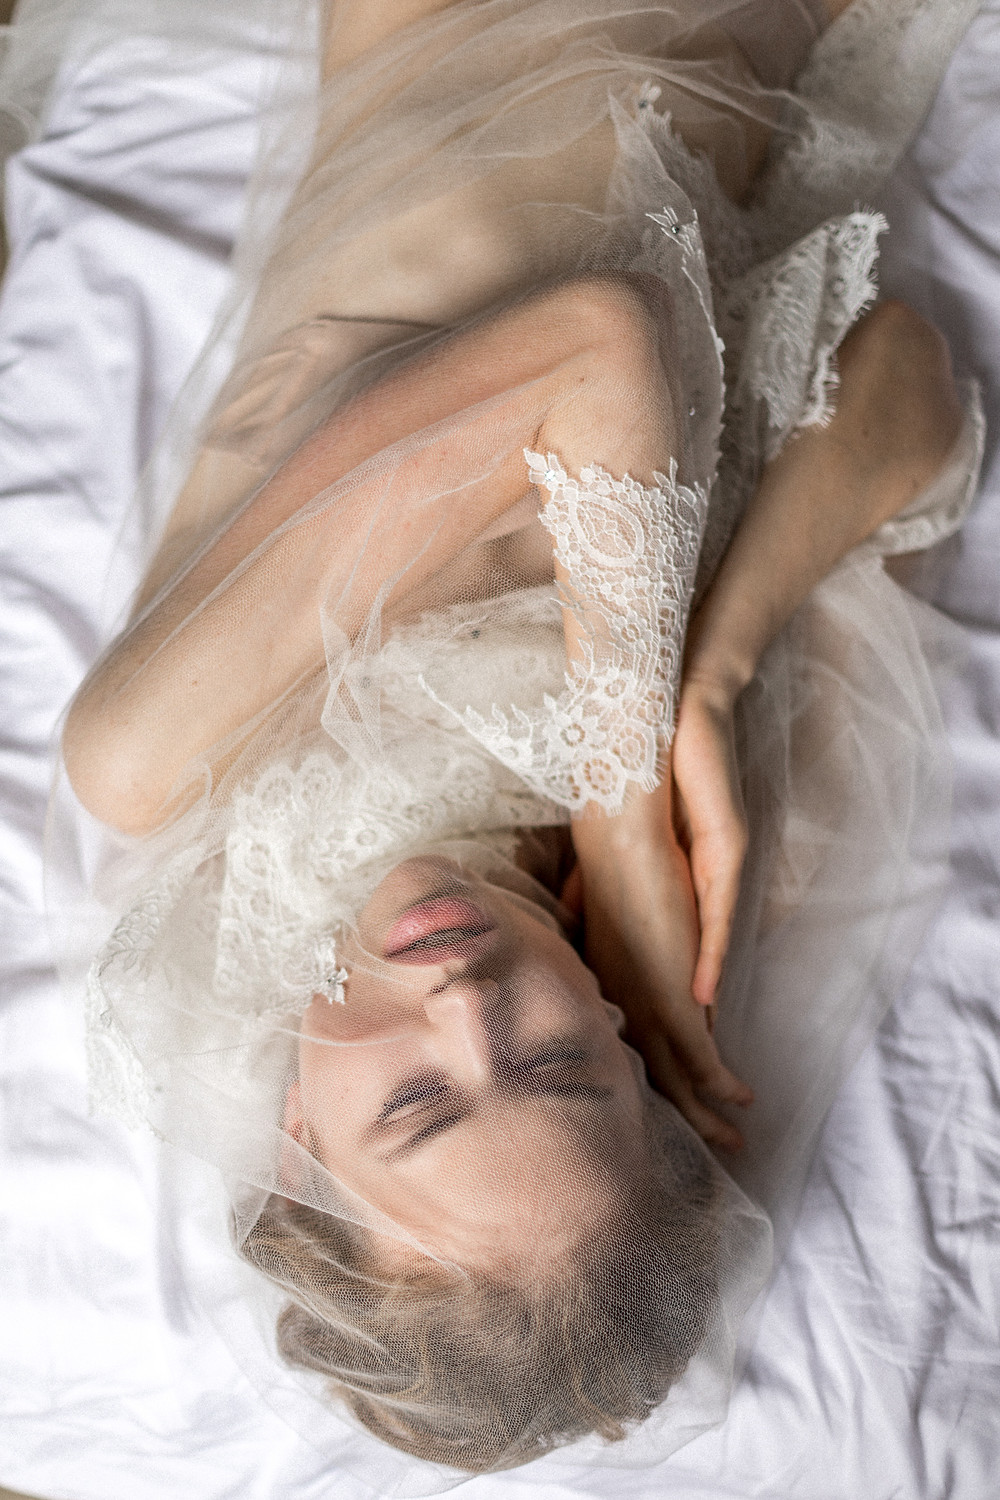 bridal boudoir session - Villa by the lake elopement in Lake Como Italy || Destination Weddingphotographer Italy || Victoria Ruef - Bohoray Adventure Wedding & Elopementphotographer